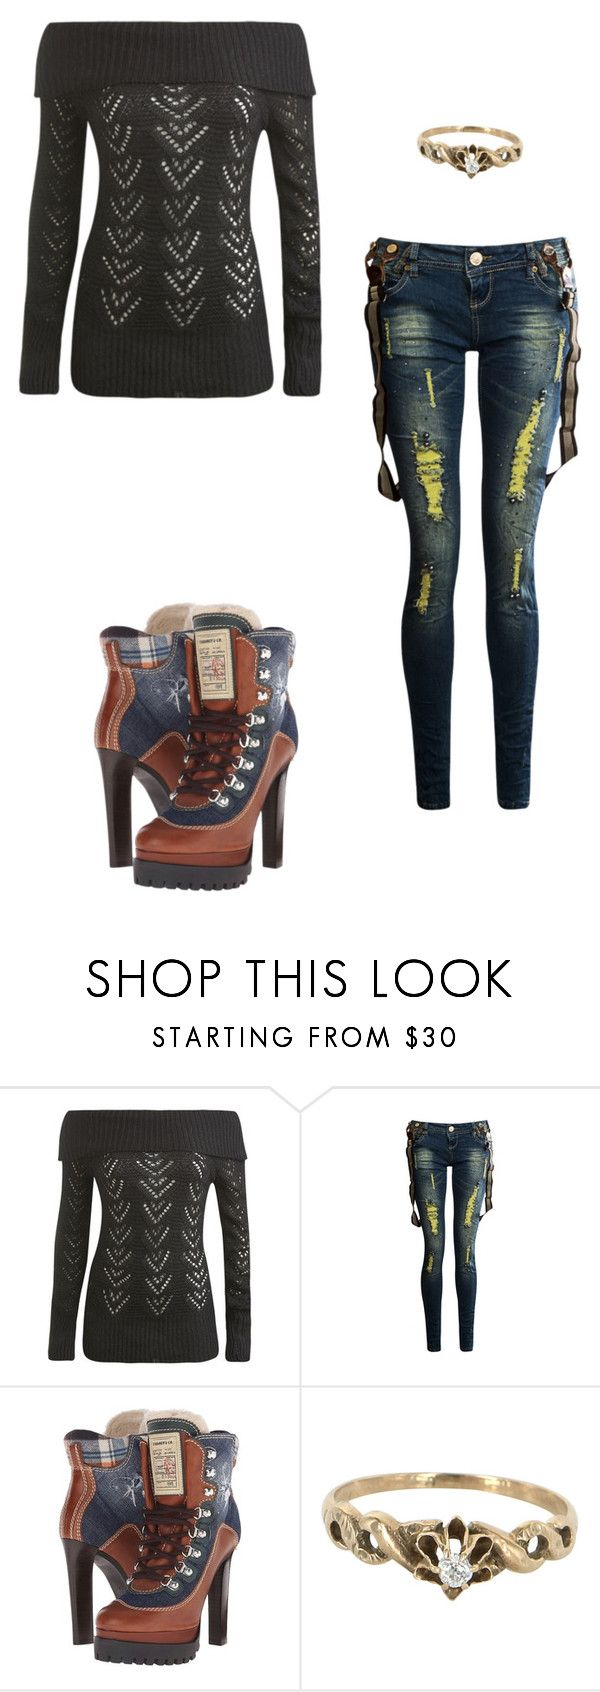 """Untitled #887"" by mvlopez on Polyvore featuring Wet Seal, Dsquared2 and Vintage"